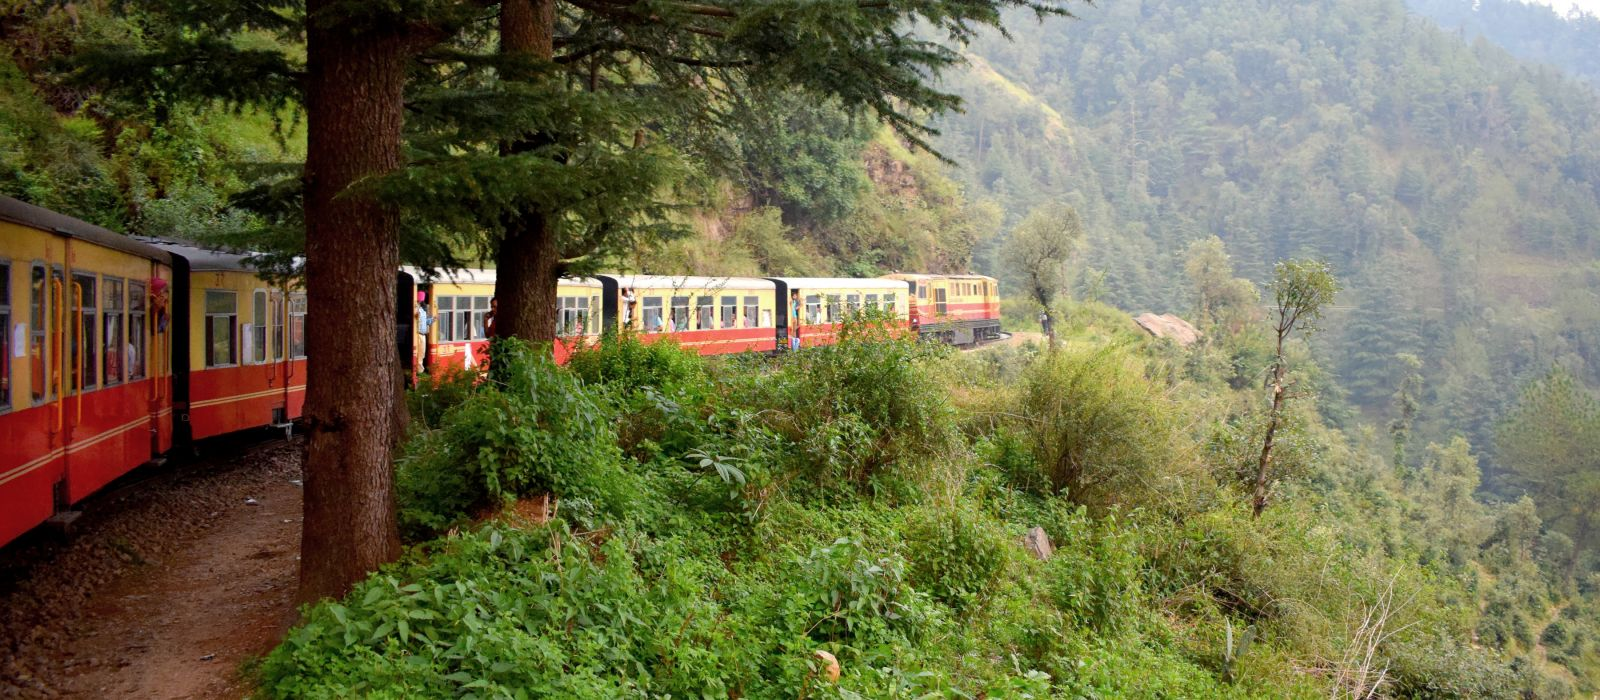 Toy train from Shimla to Kalka in India